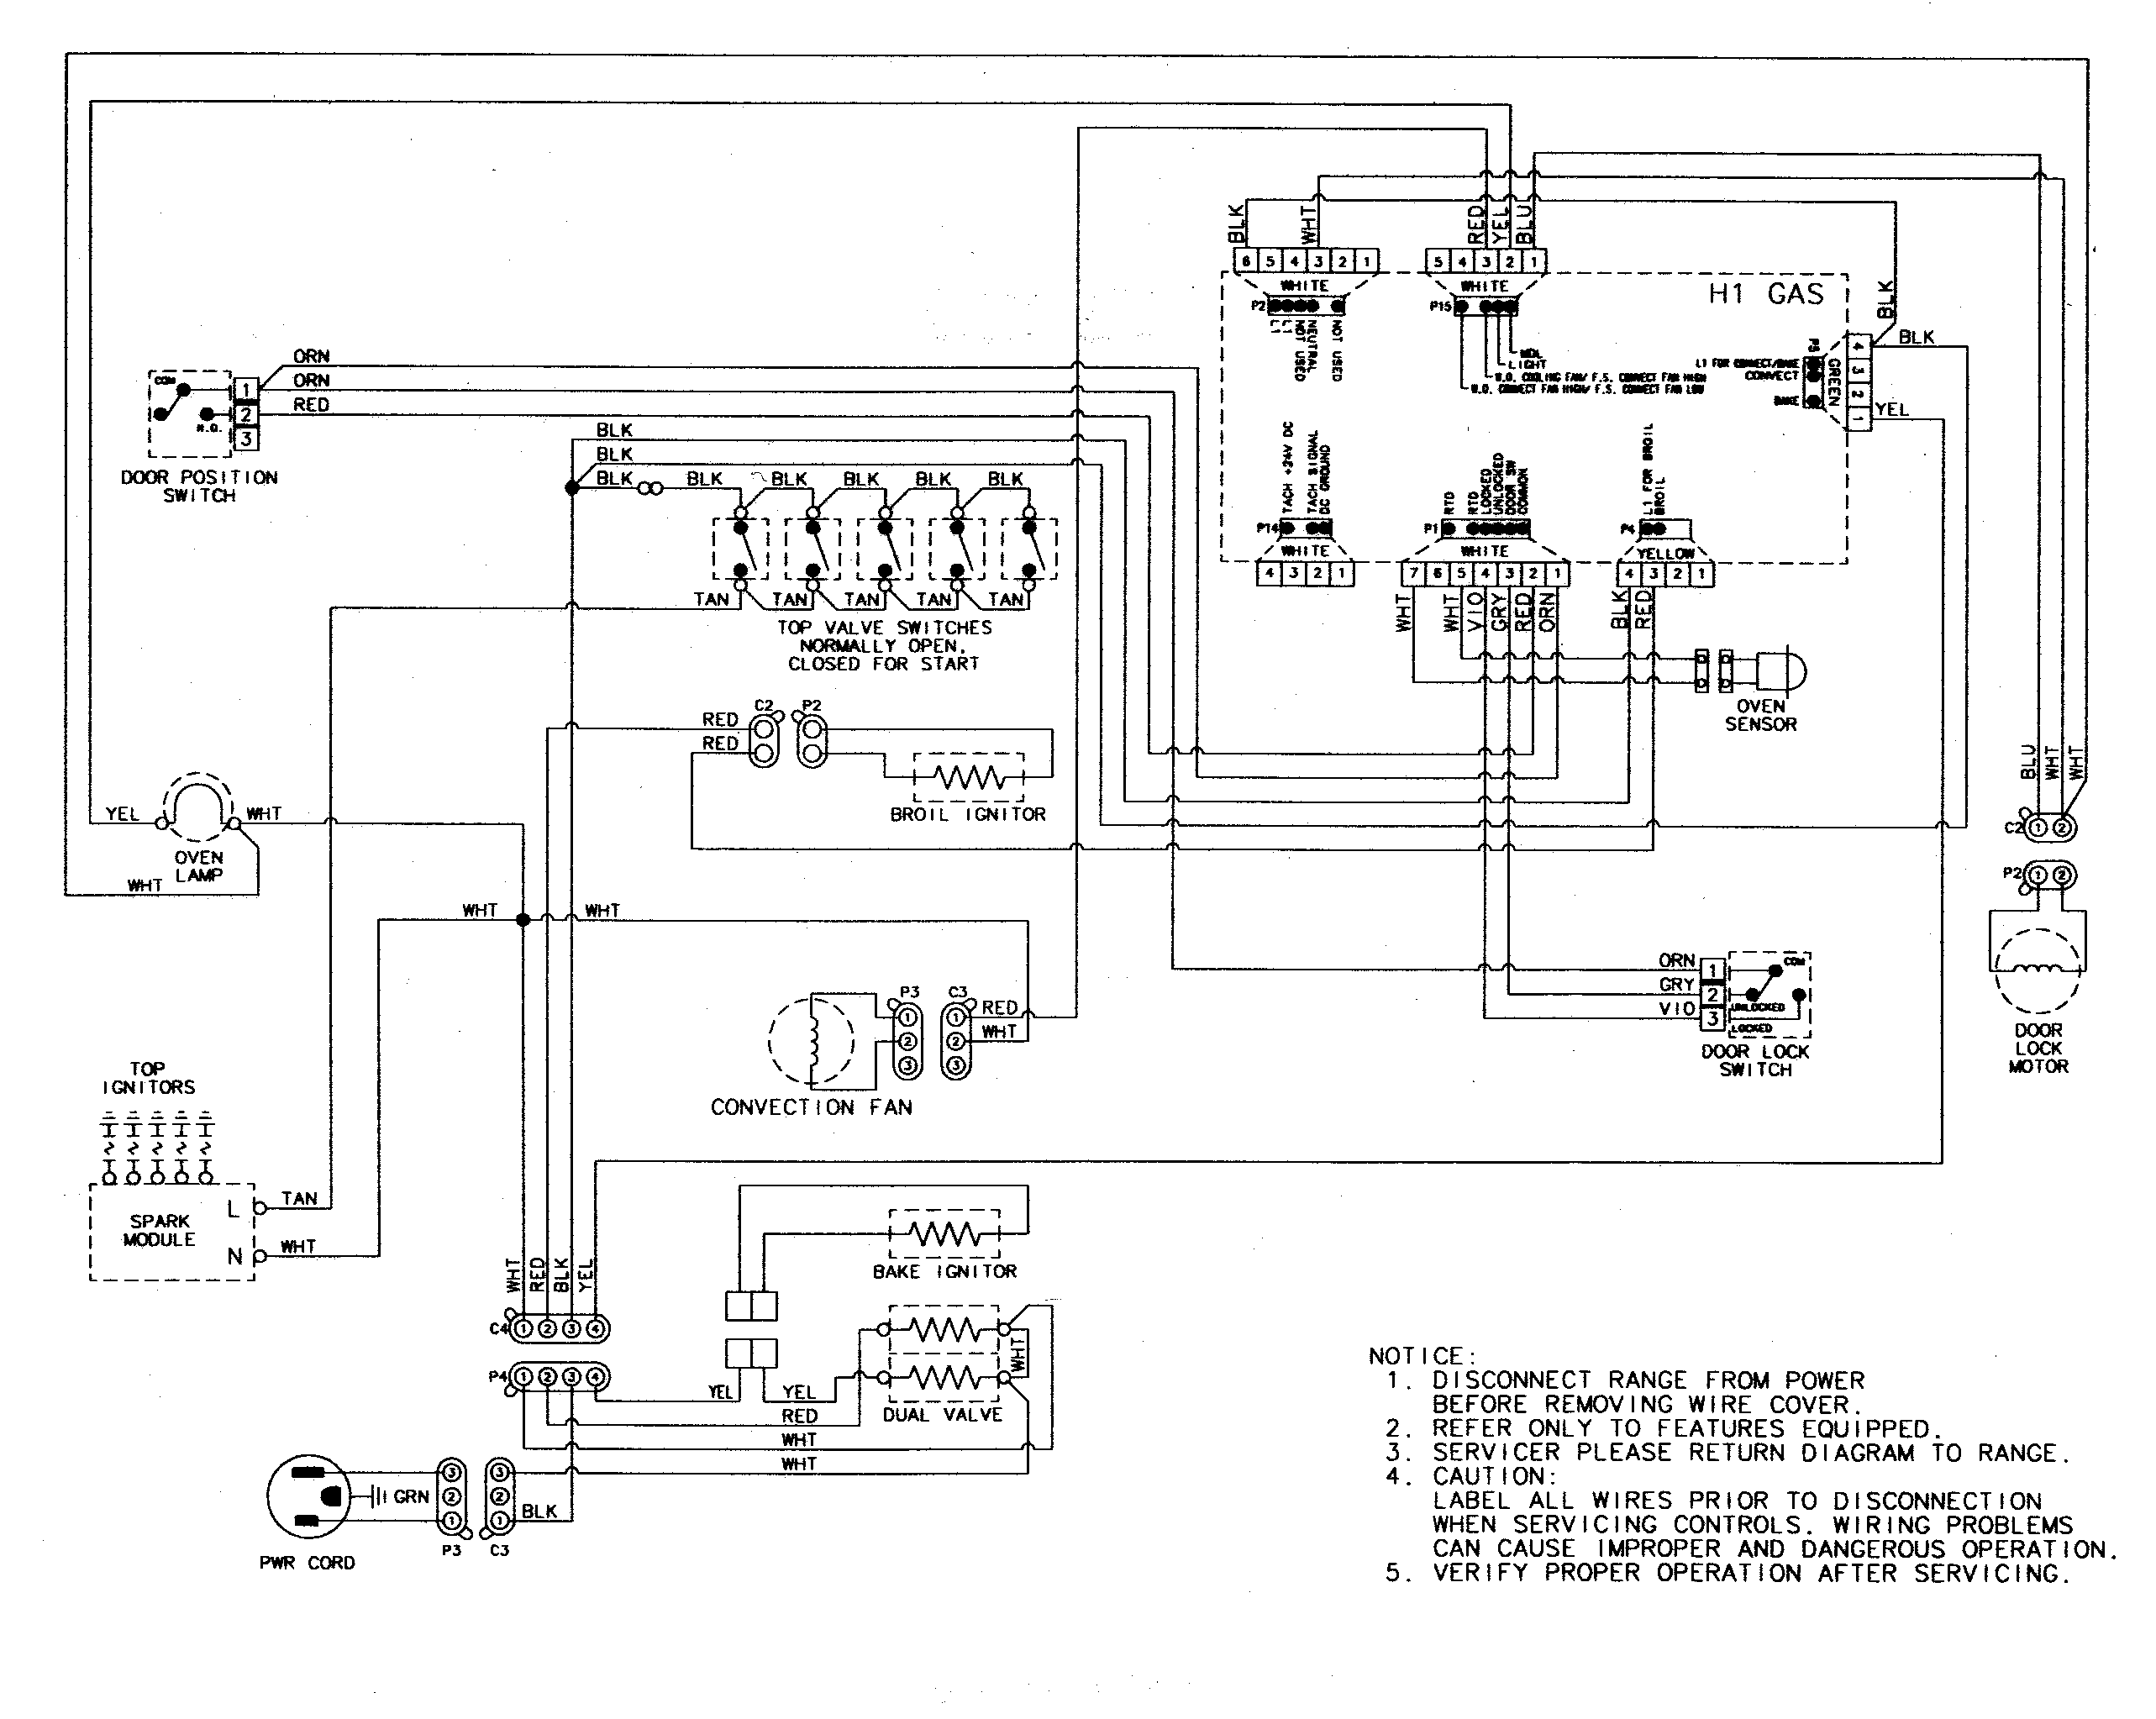 Weil Mclain Wiring Diagram as well Cadet Heater Wiring Diagram likewise Index together with 85213 Wiring Basics For Residential Gas Boilers in addition Electric heated air curtain. on wall heater thermostat diagram